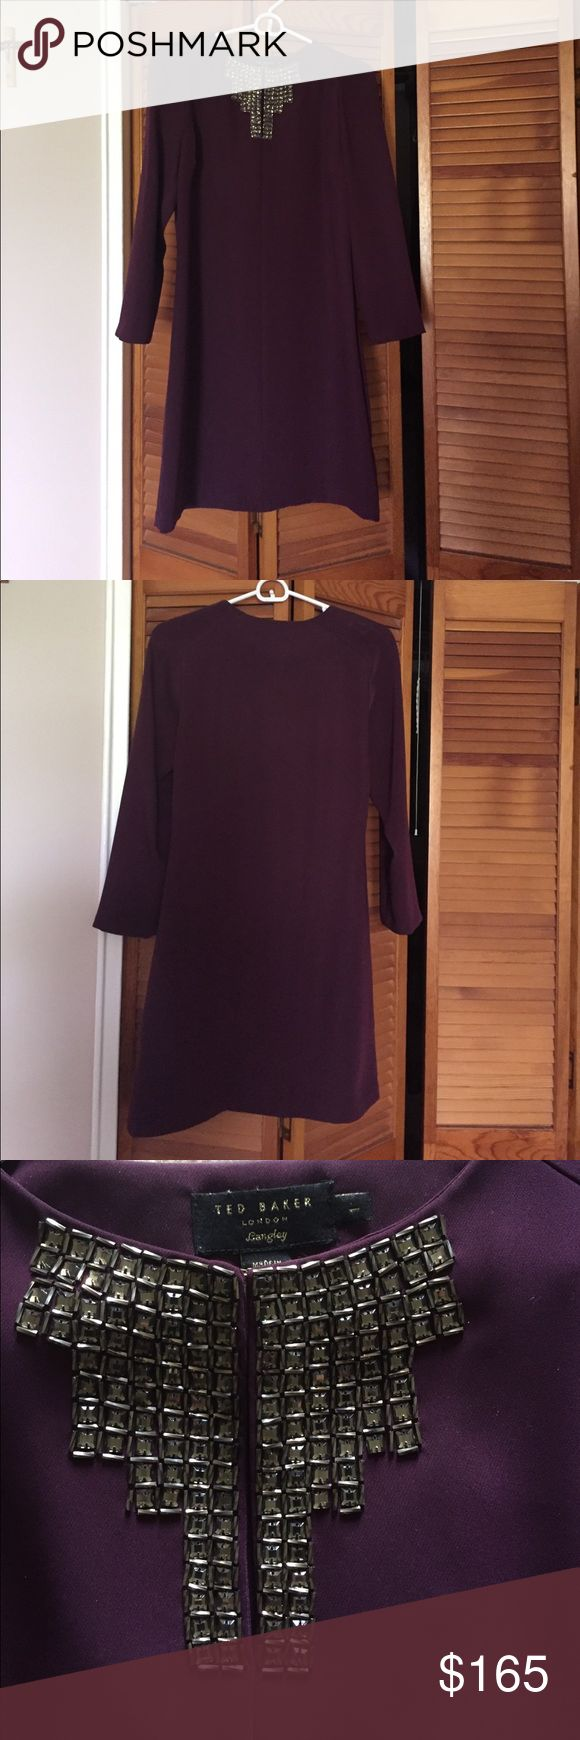 Ted Baker dark purple dress 👗 🍇 Sophisticated above the knee dress - ( 33 inches) feels silky and looks gorgeous with beautiful front detail - could be day to night or party dress...🎊no damage no stains- worn once 🌟 Ted Baker Dresses Mini